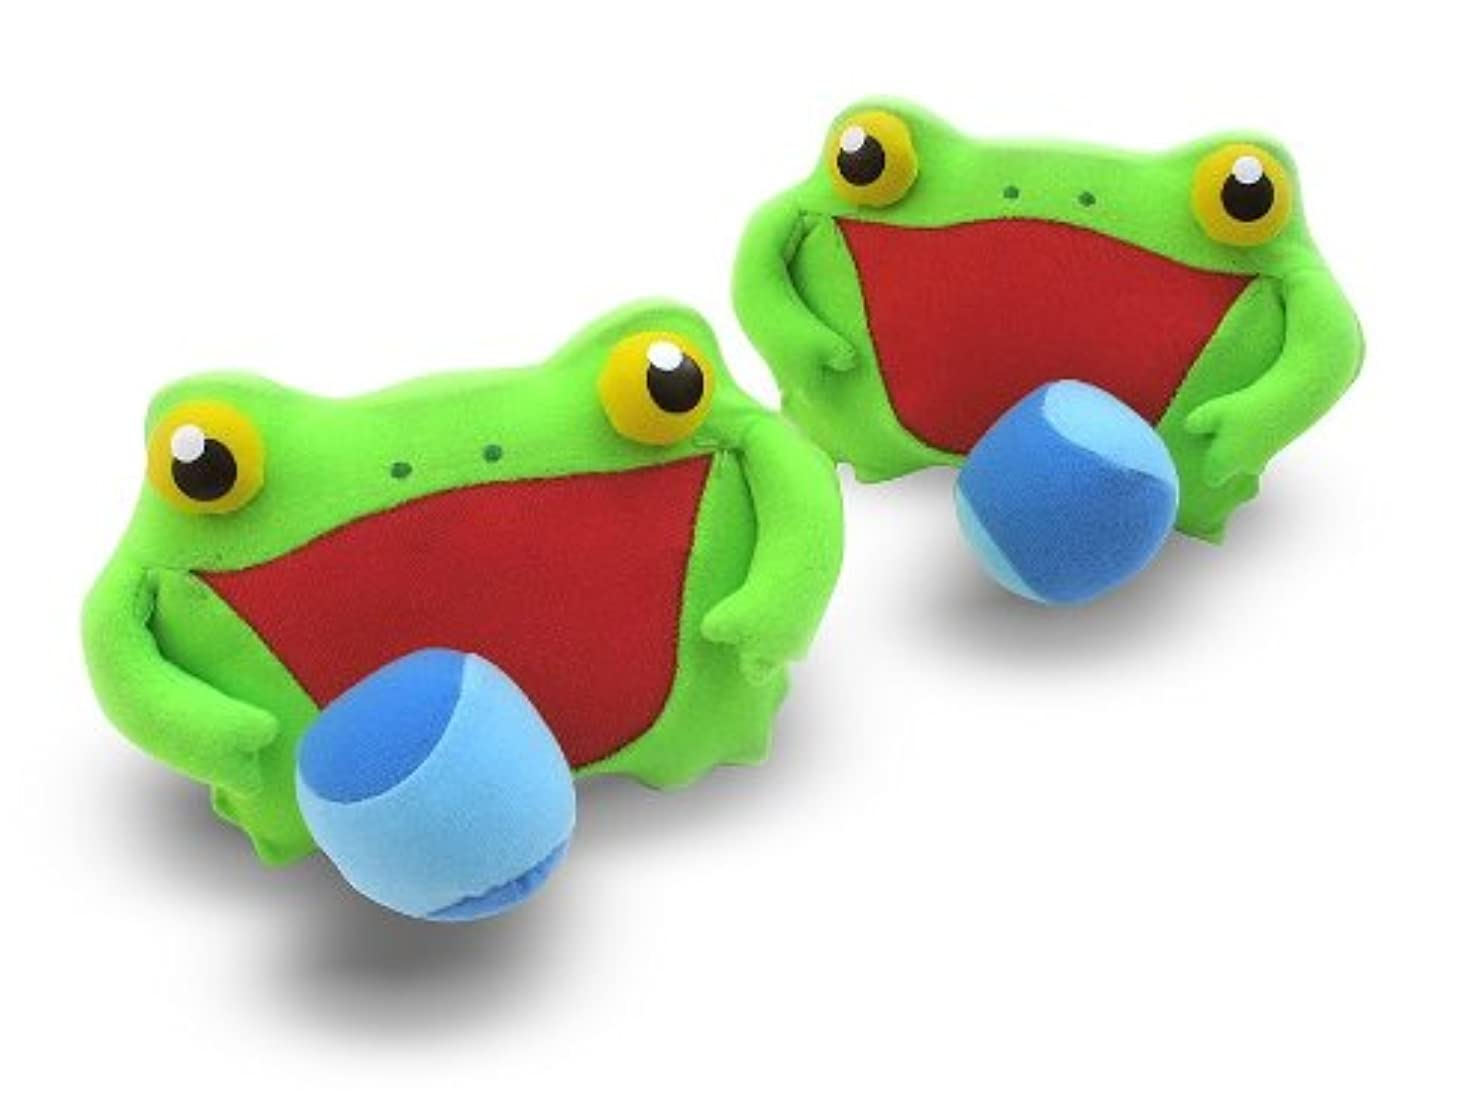 Melissa & Doug Sunny Patch Froggy Toss and Grip Catching Game With 2 Balls lpsnssknvbh20